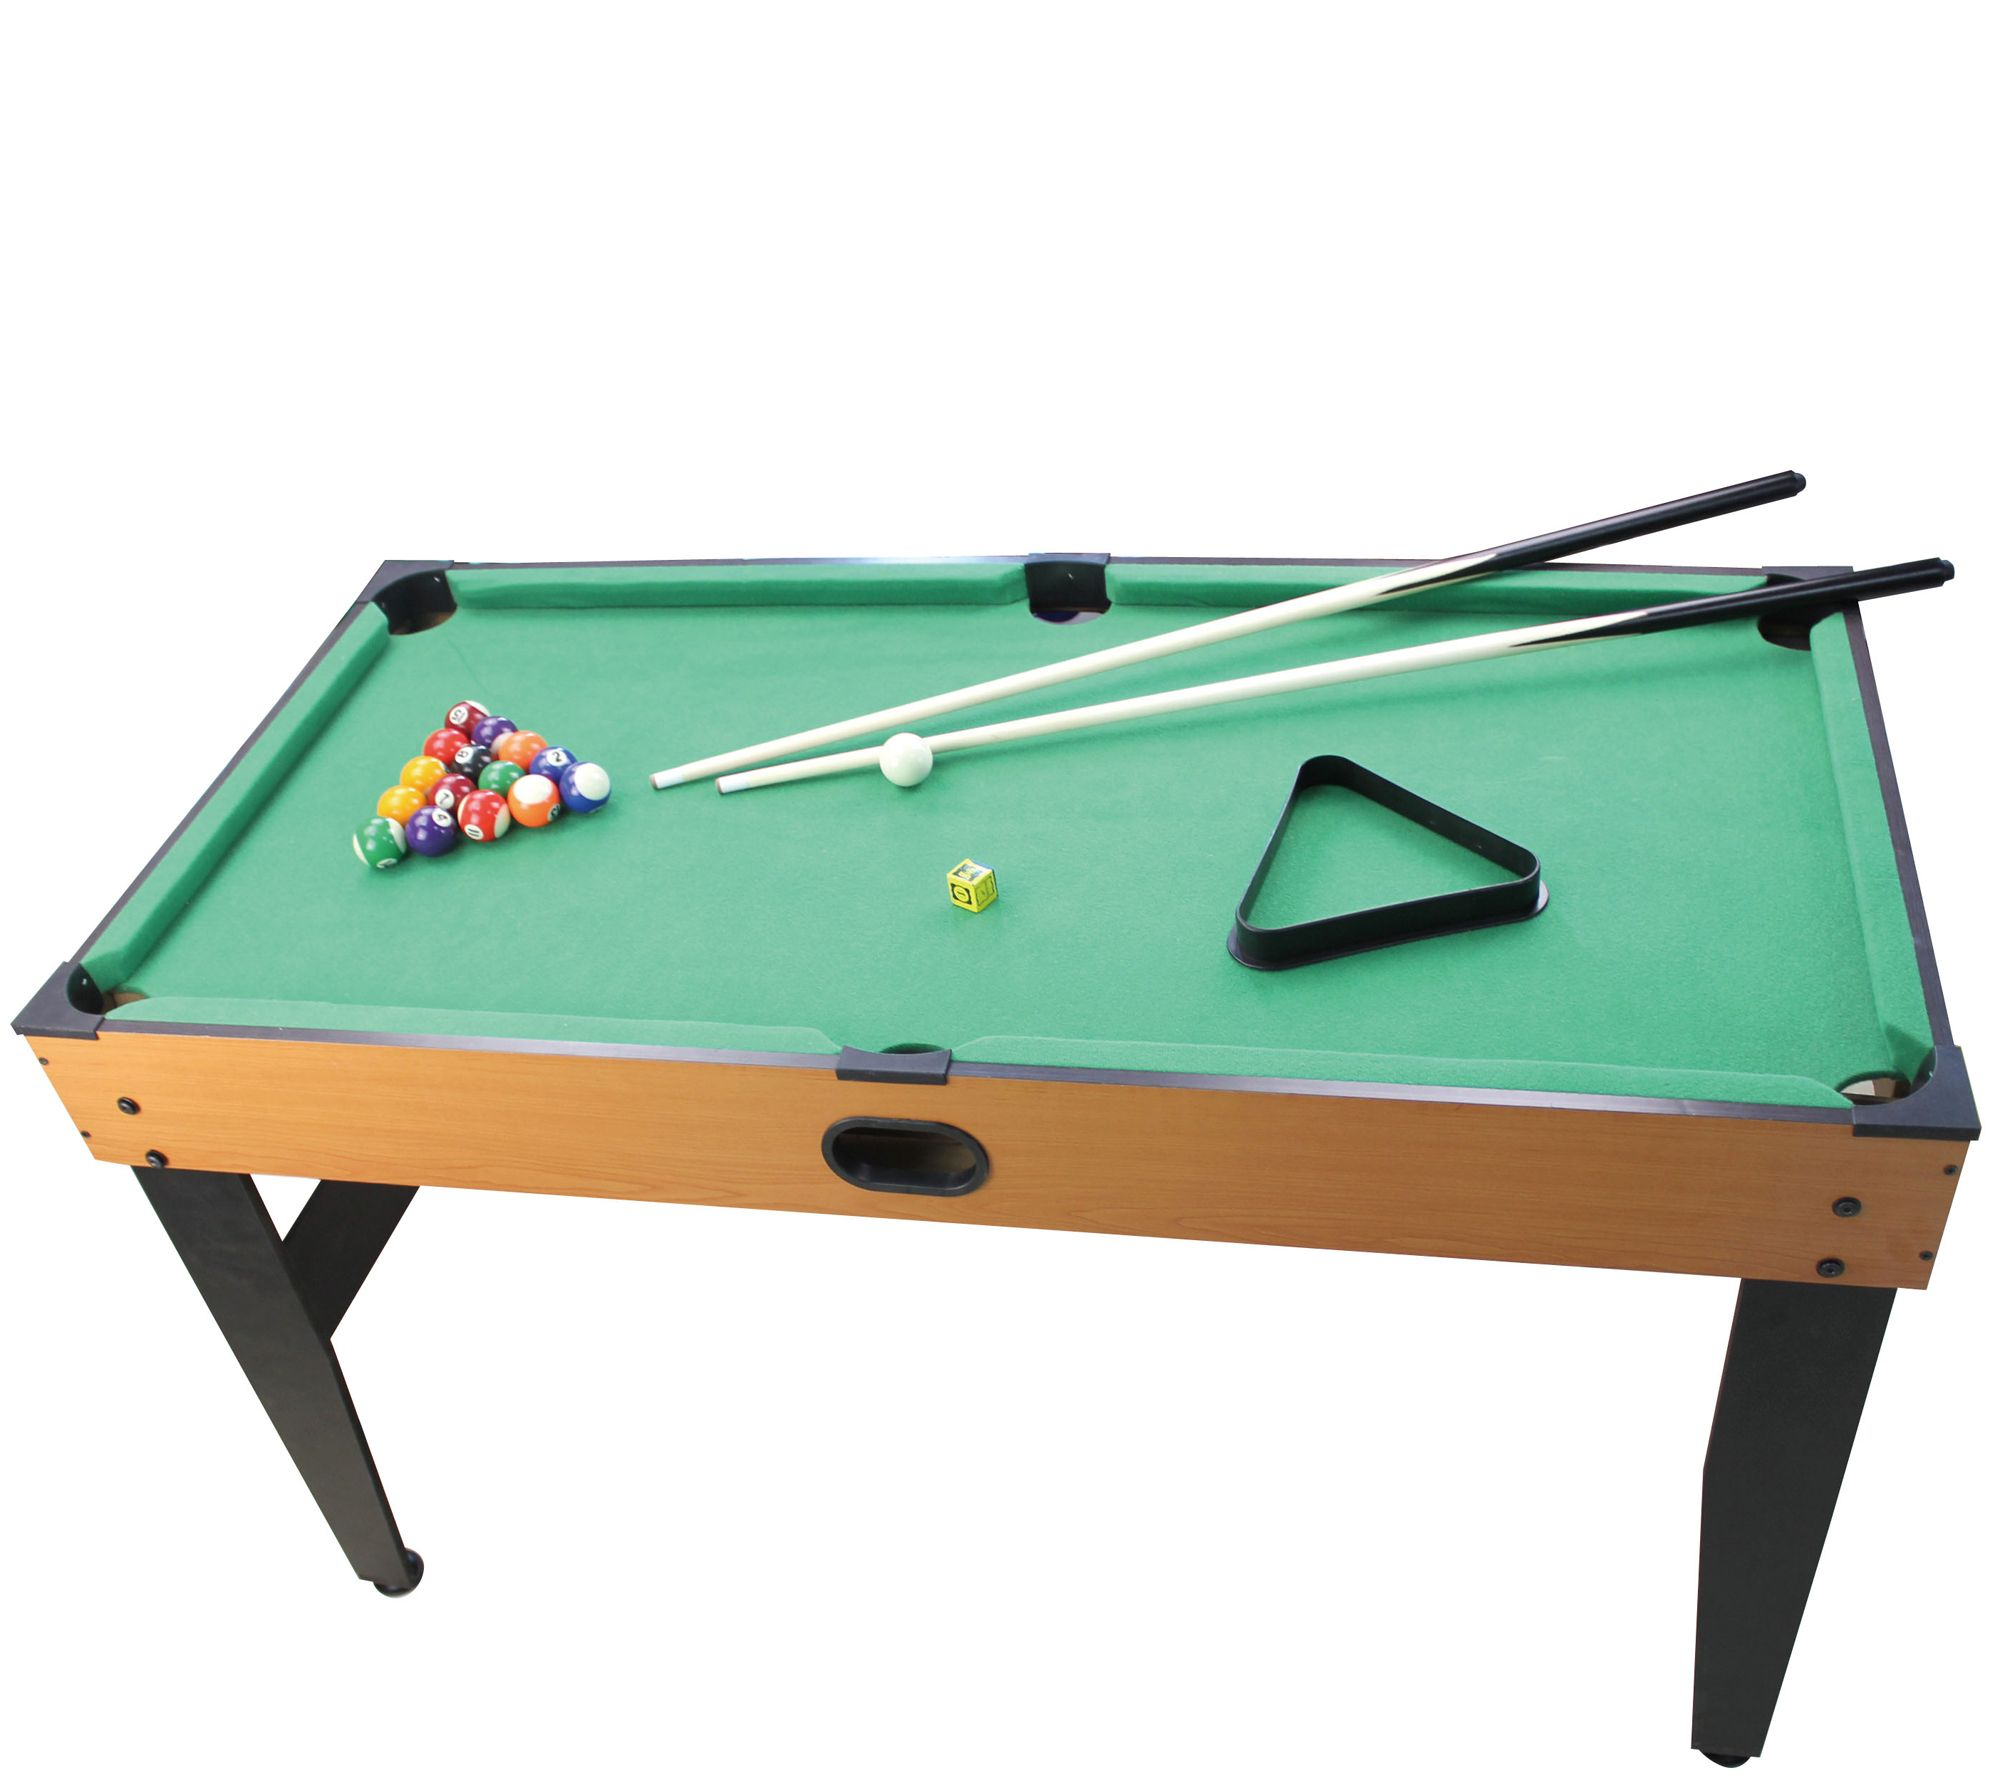 4' Pool Table and Accessories — QVC.com